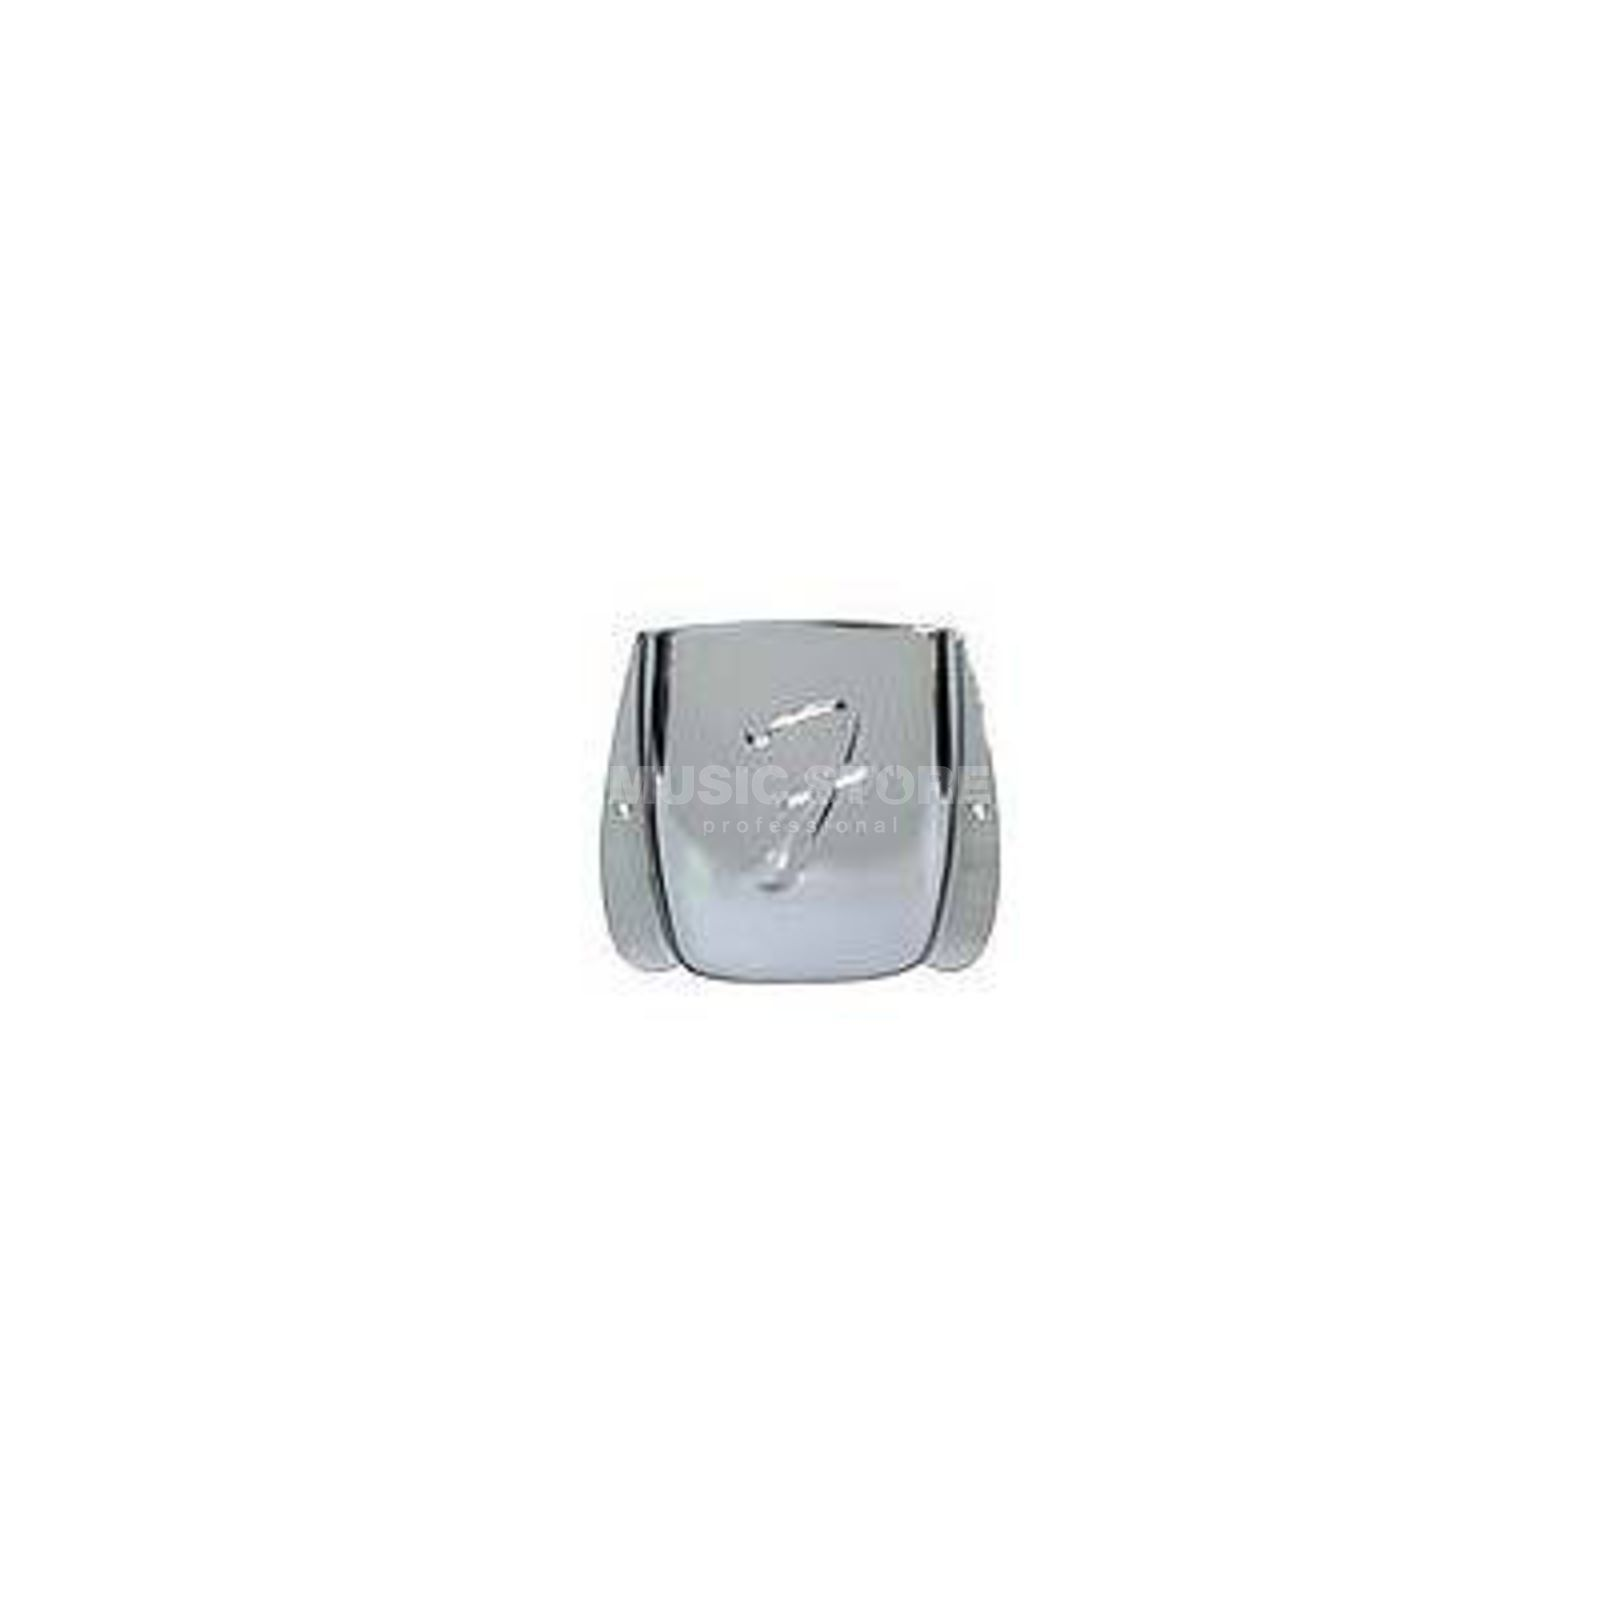 Fender Bridge Cover Jazz bas Chrome Productafbeelding